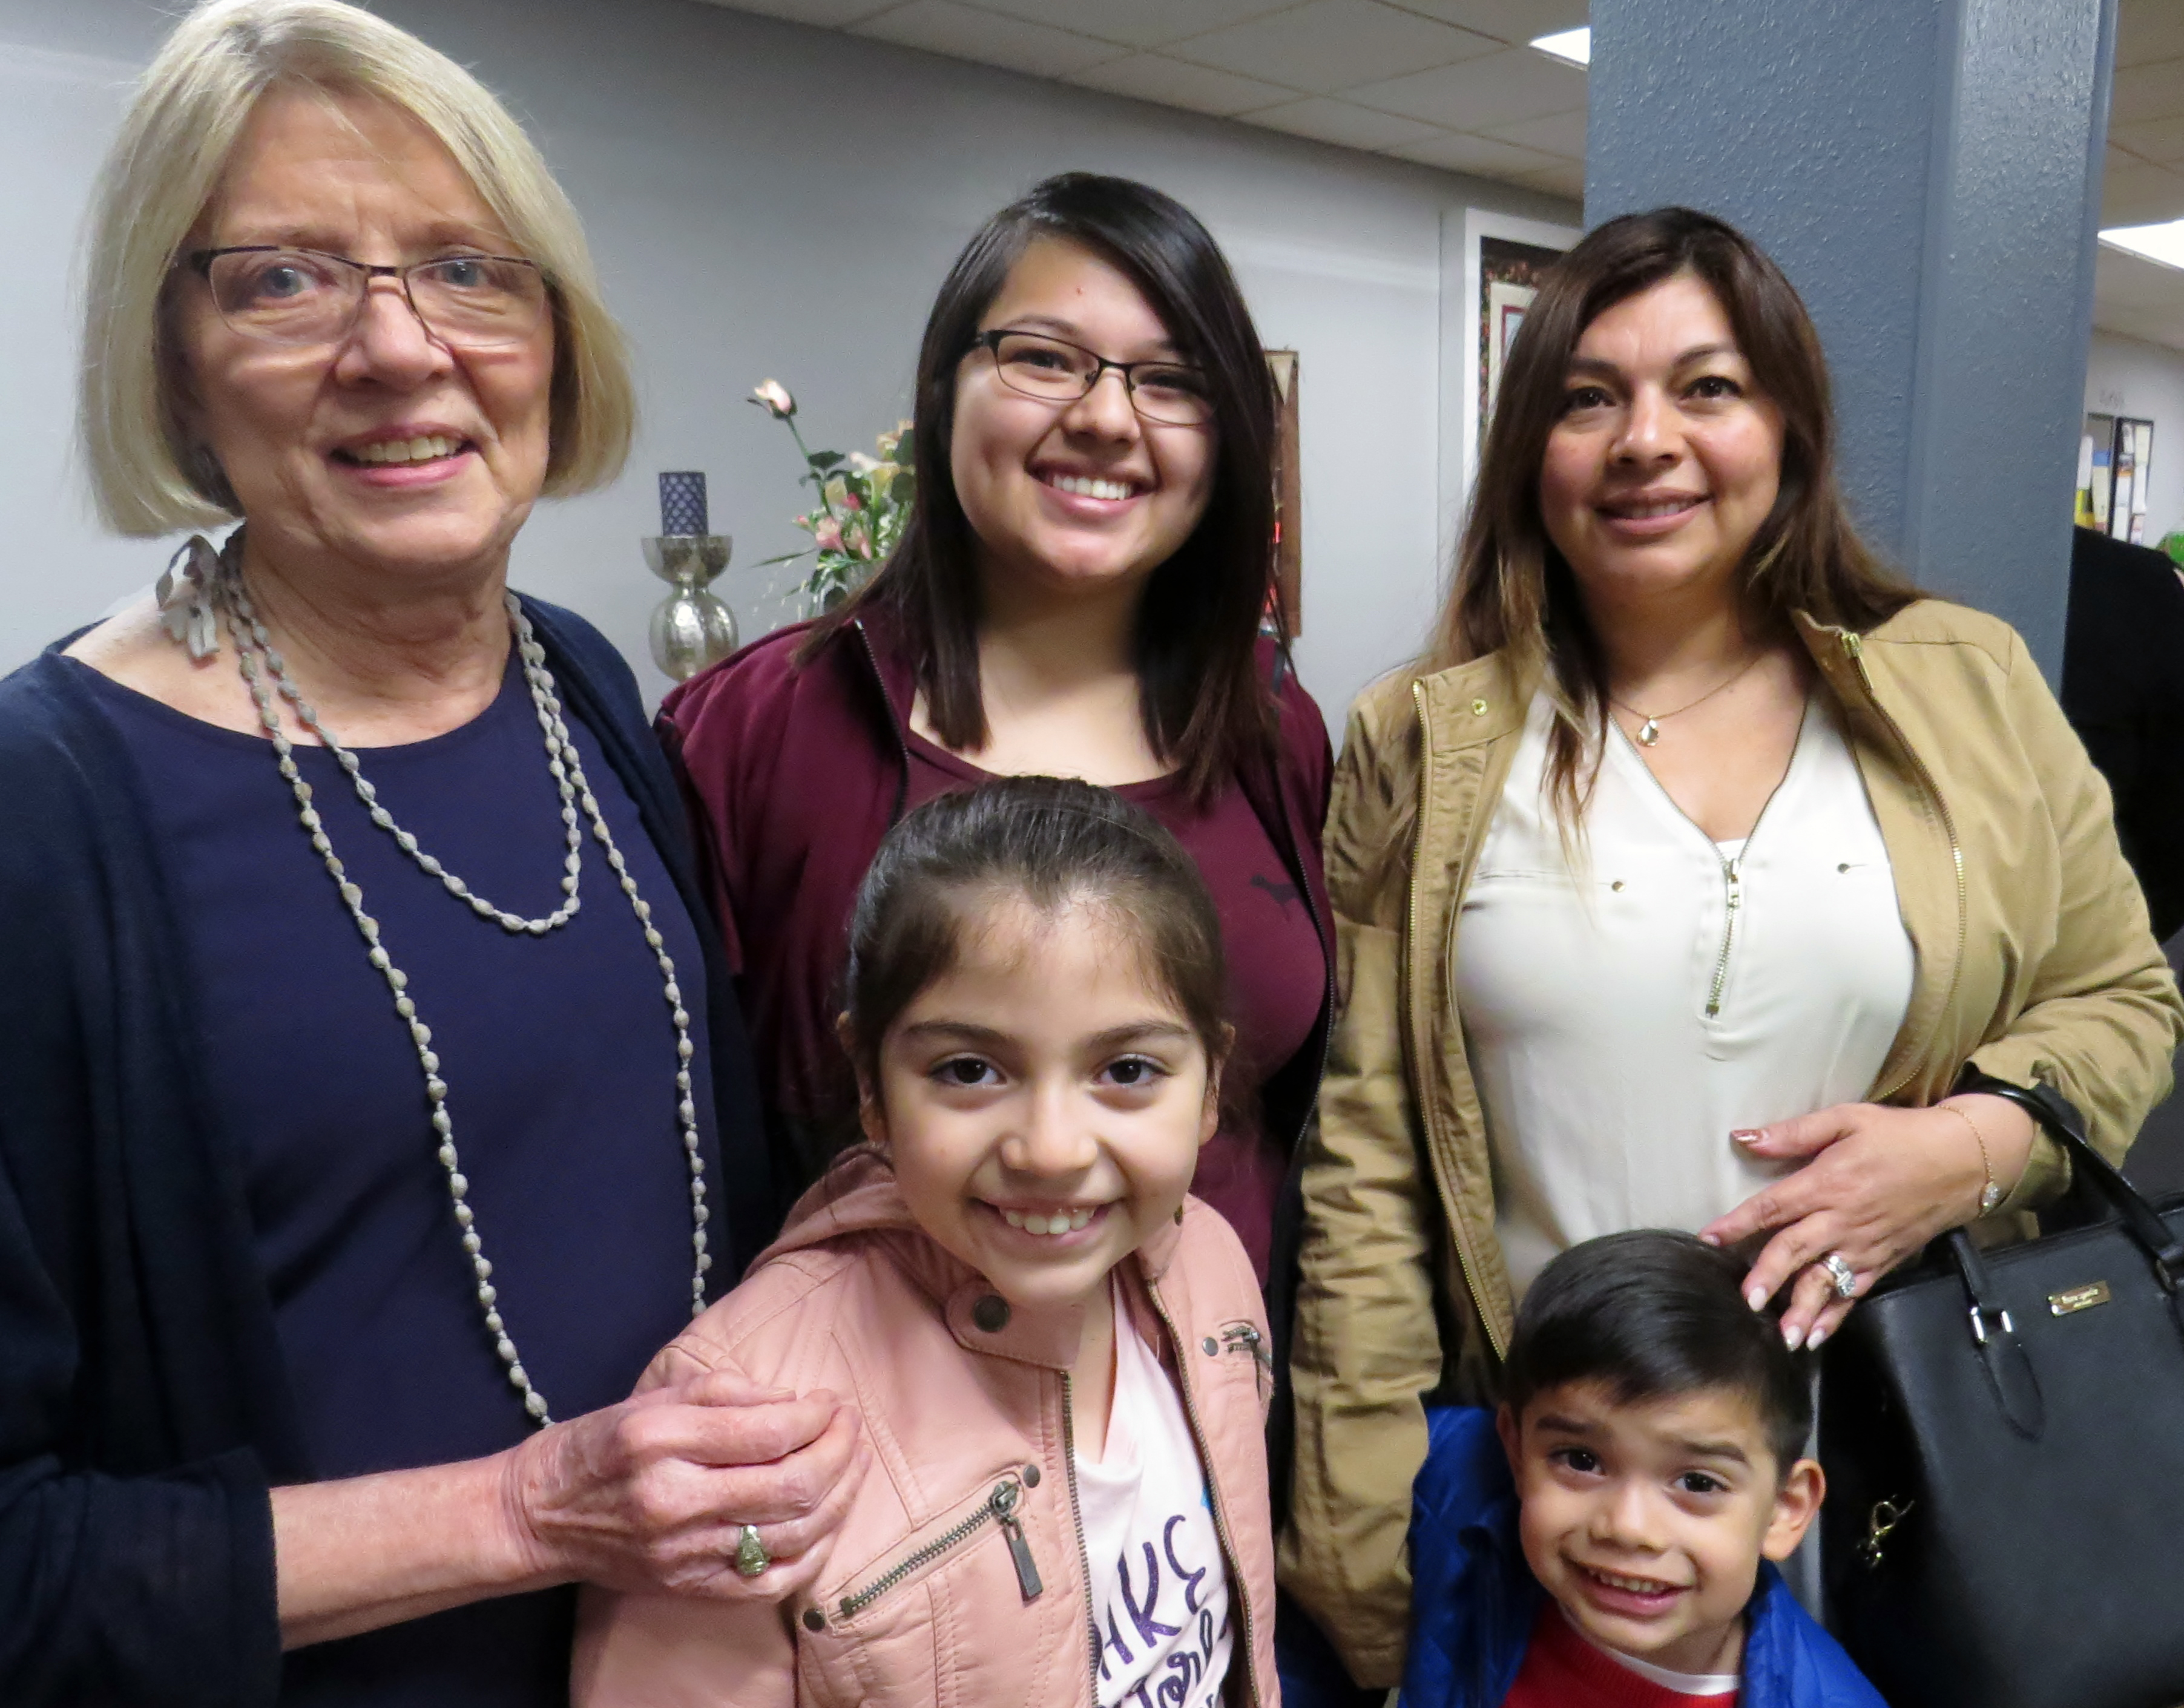 Kay Schecht has been a mentor to three generations of the Lopez family in Irving, Texas. She stands with Dalia Lopez (far right) and Dalia's daughter, Selena, and in front are Selena's children Mia, 8, and Ethan, 4. Schecht received the Foundation for Evangelism's Distinguished Evangelist Award in recognition of more than 20 years of service to at-risk children and youth. Photo by Sam Hodges, UMNS.